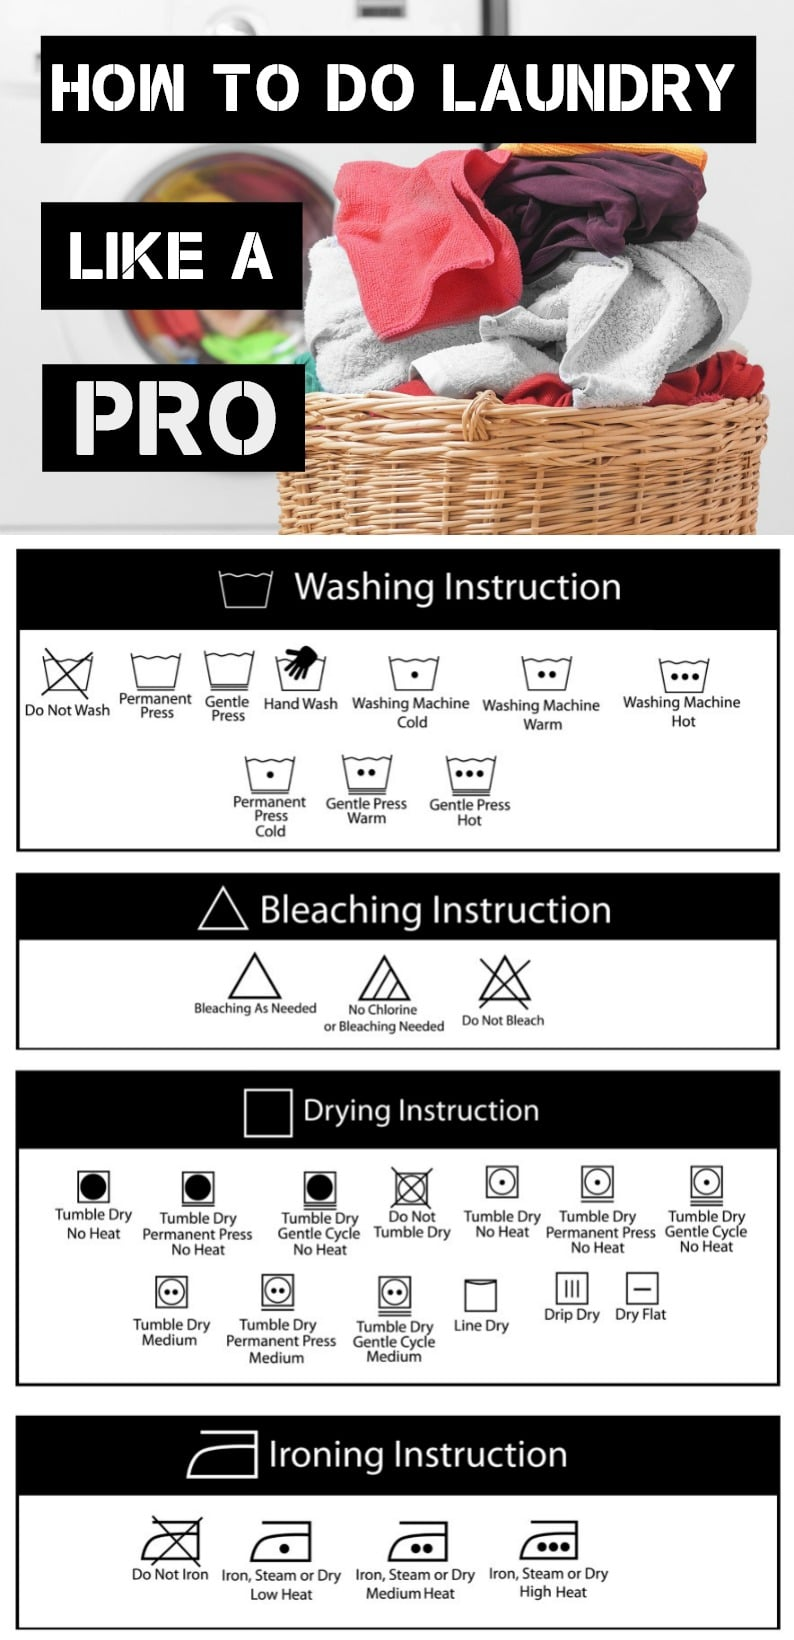 how to do laundry like a pro